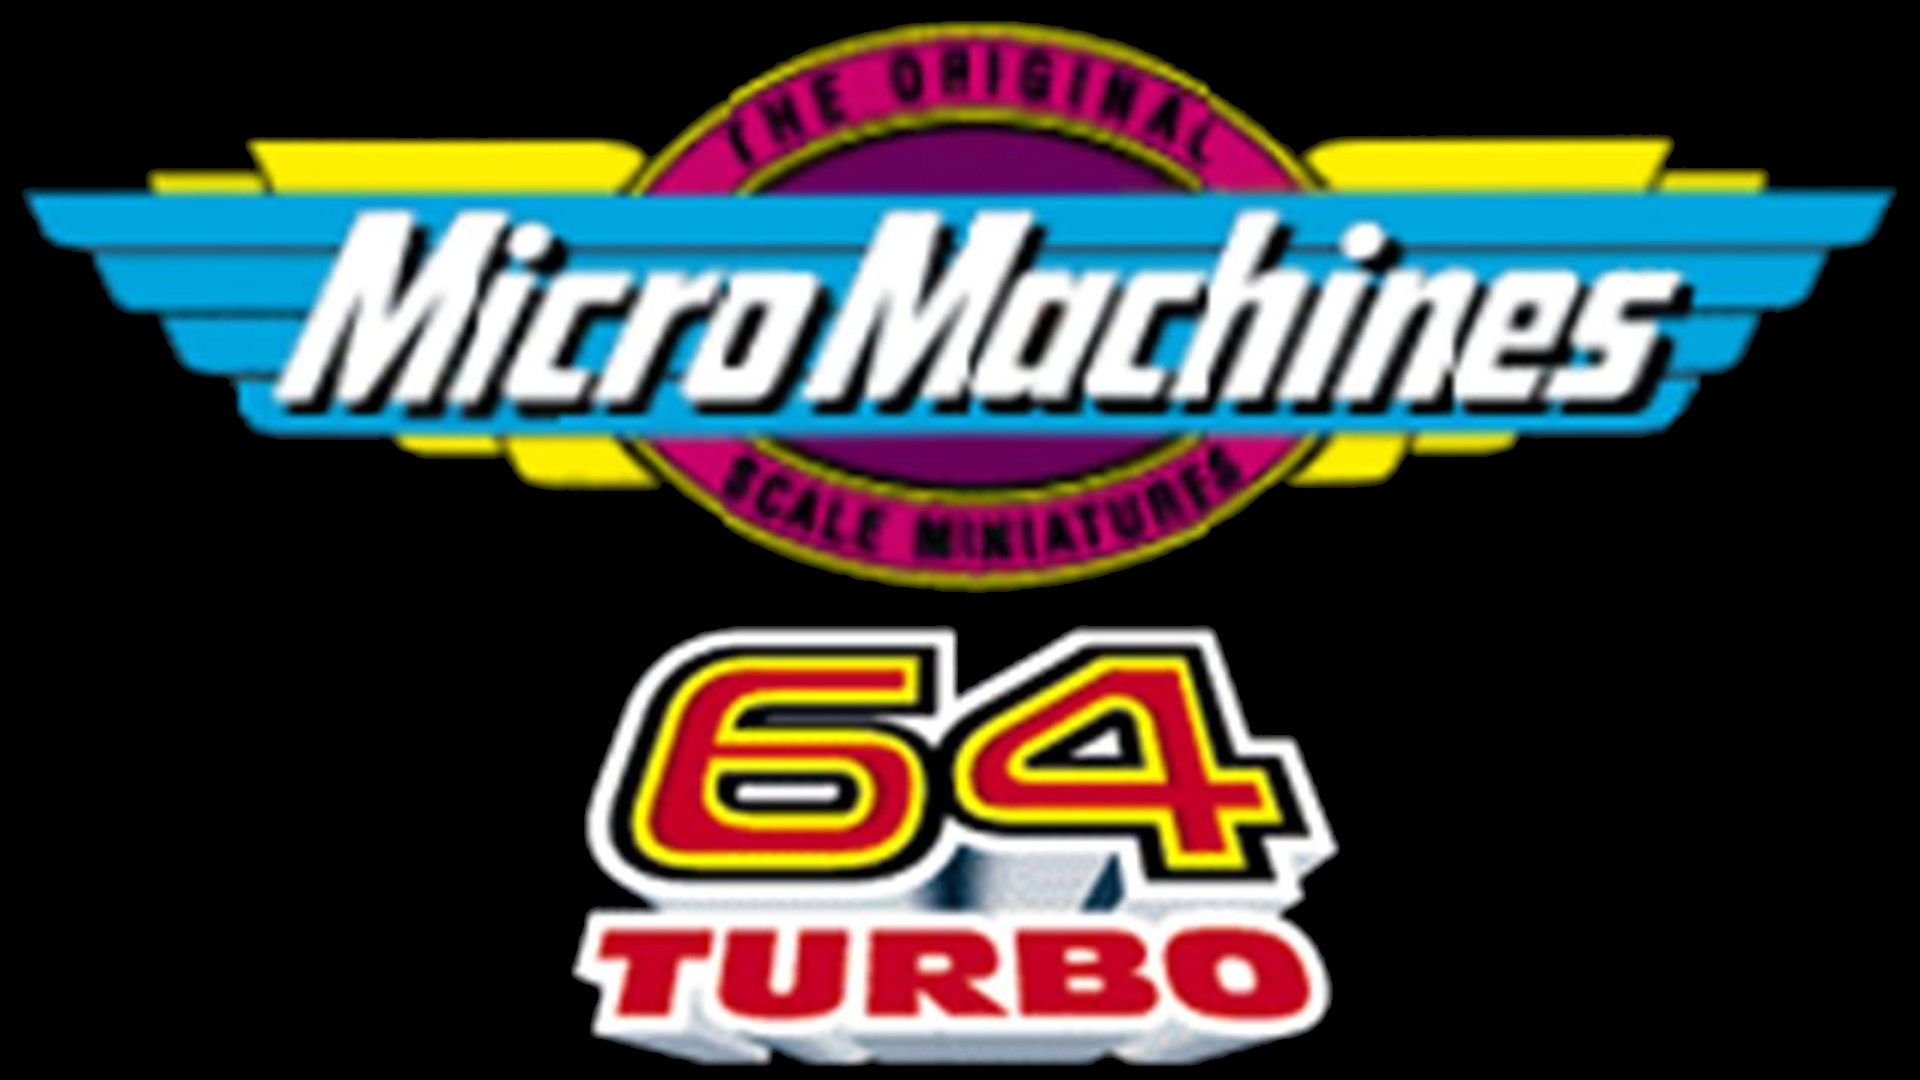 Micro Machines 64 Turbo Logo